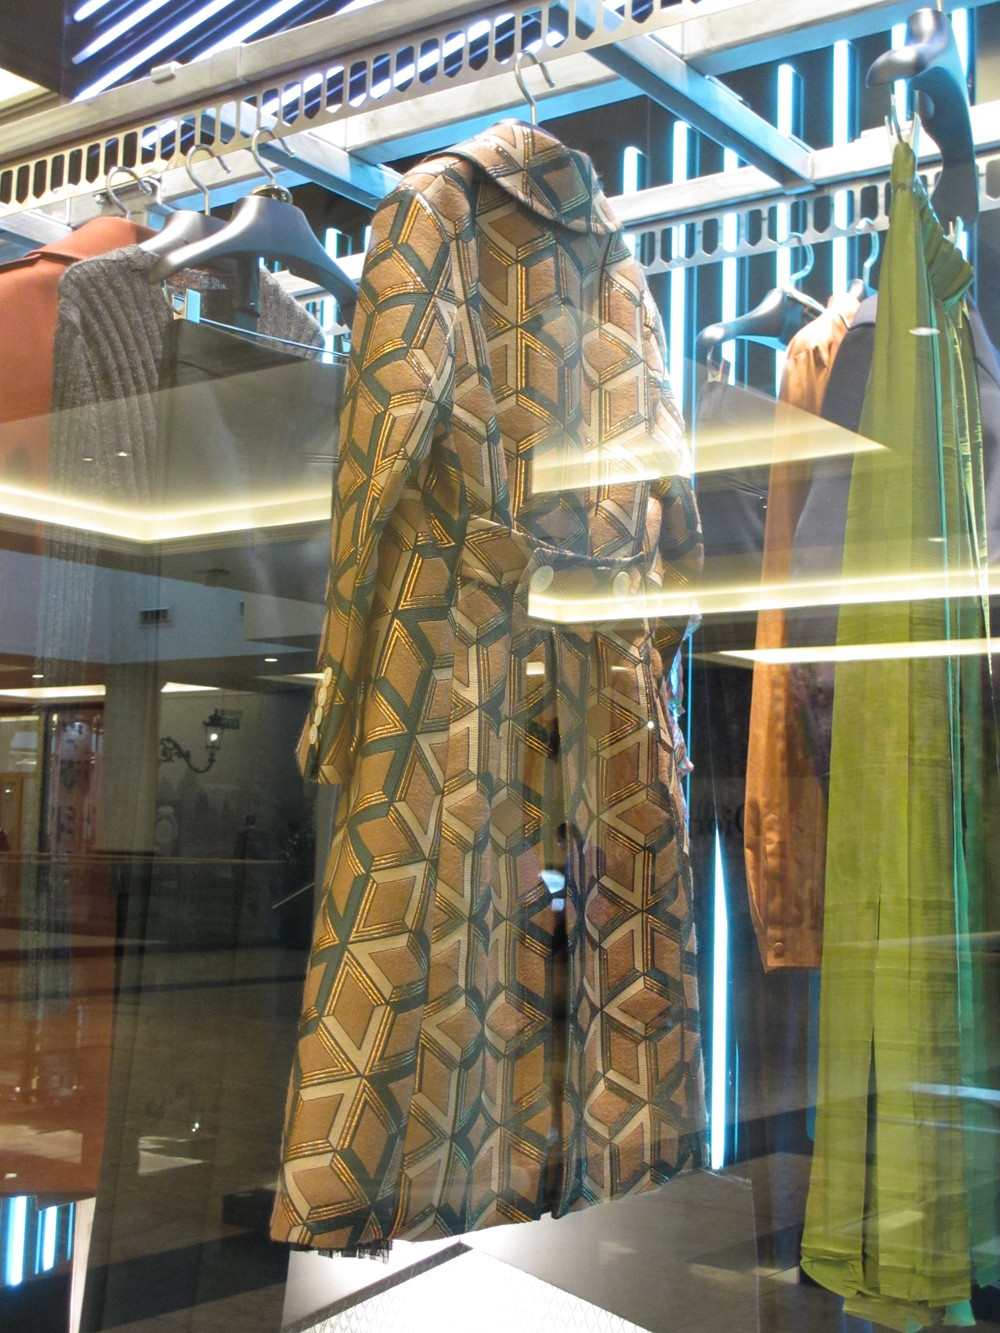 The dry-cleaners carousel with a 70s inspired coat.